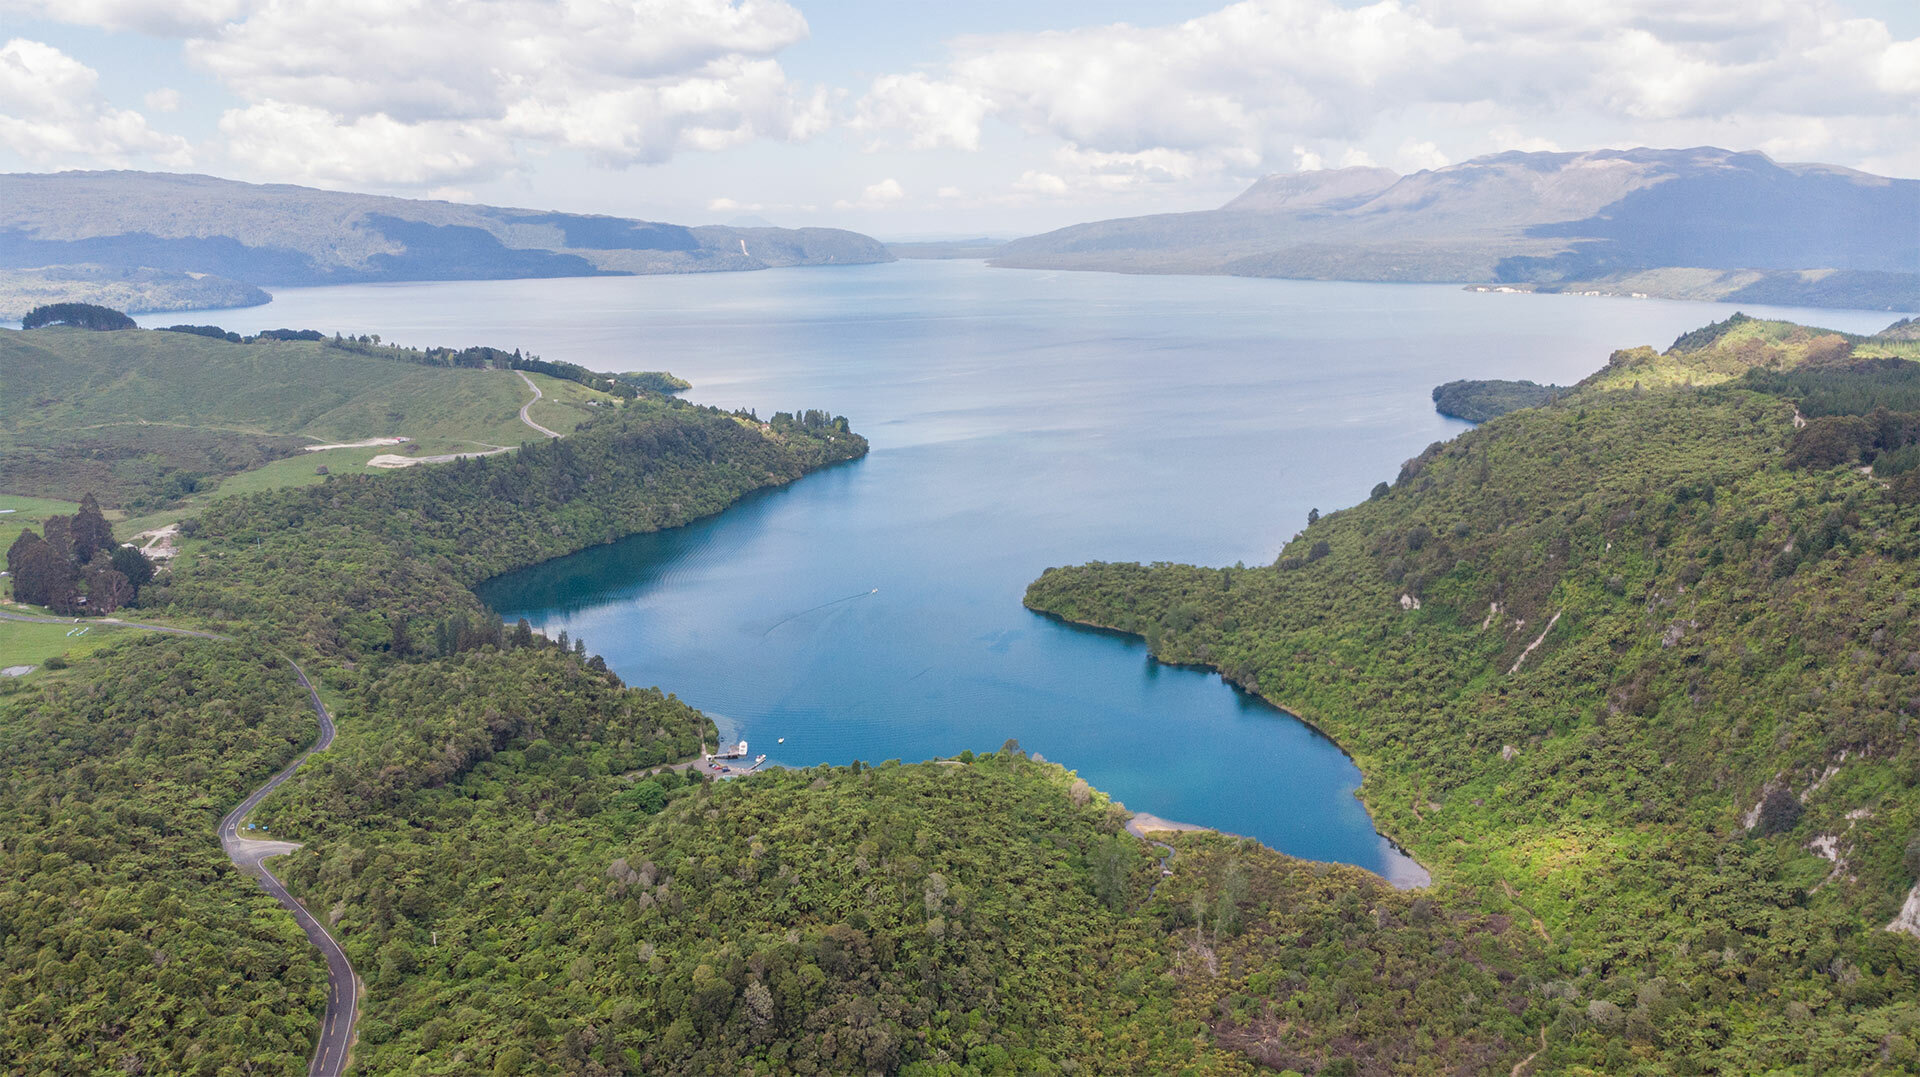 Land-use change for Lake Rotorua catchment